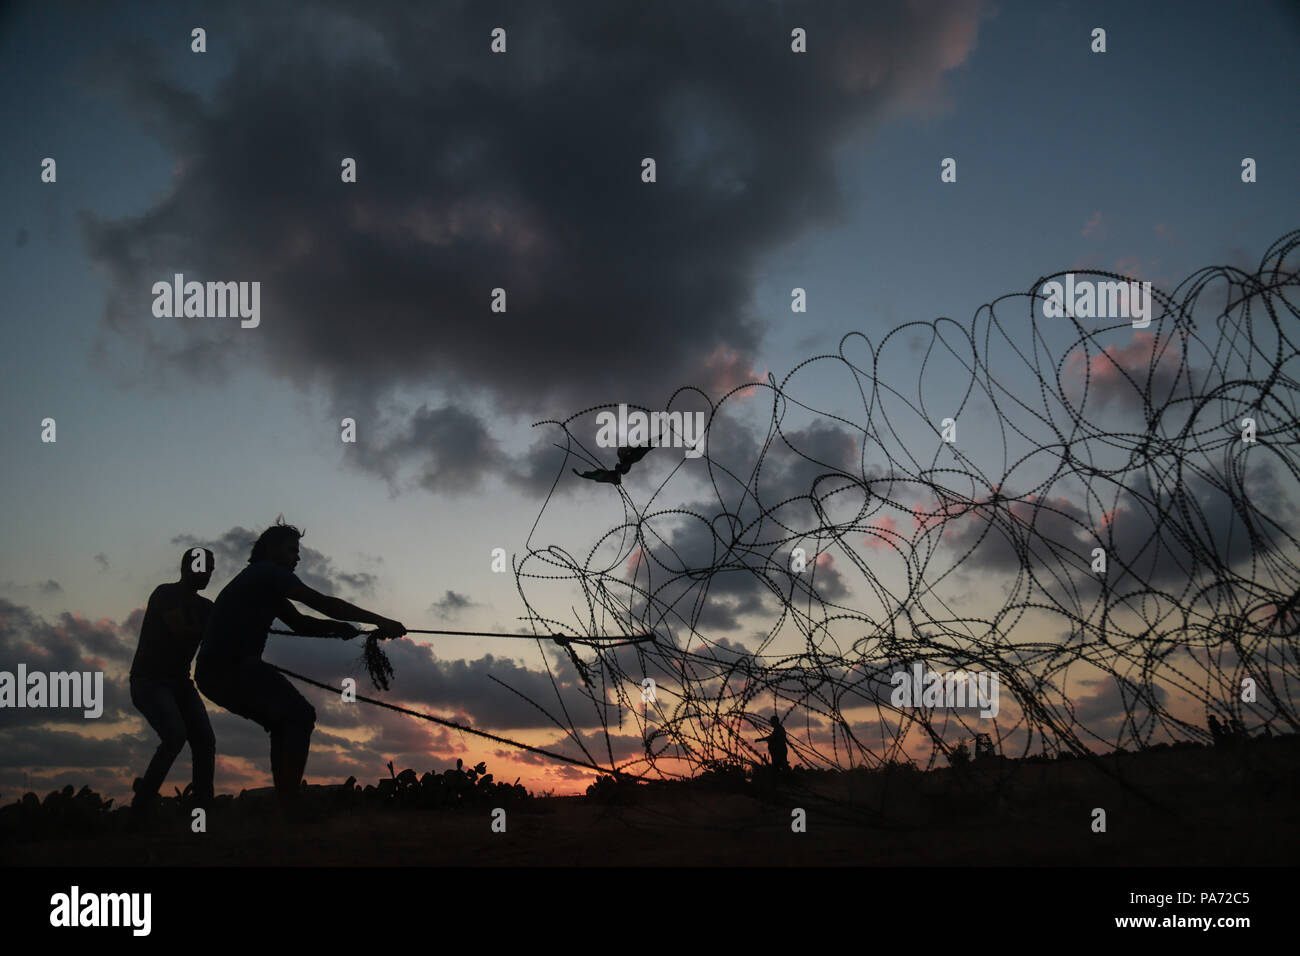 Pull Wire Stock Photos & Pull Wire Stock Images - Alamy